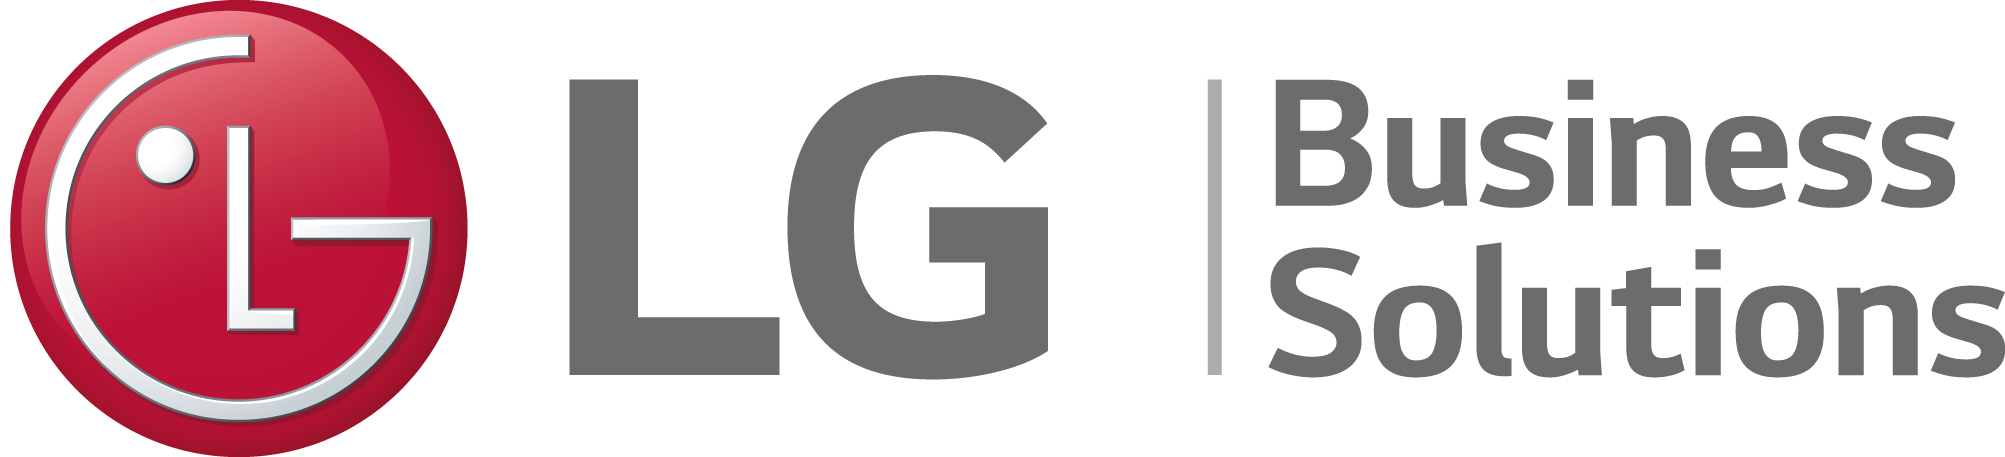 LG Business Solutions logo 1